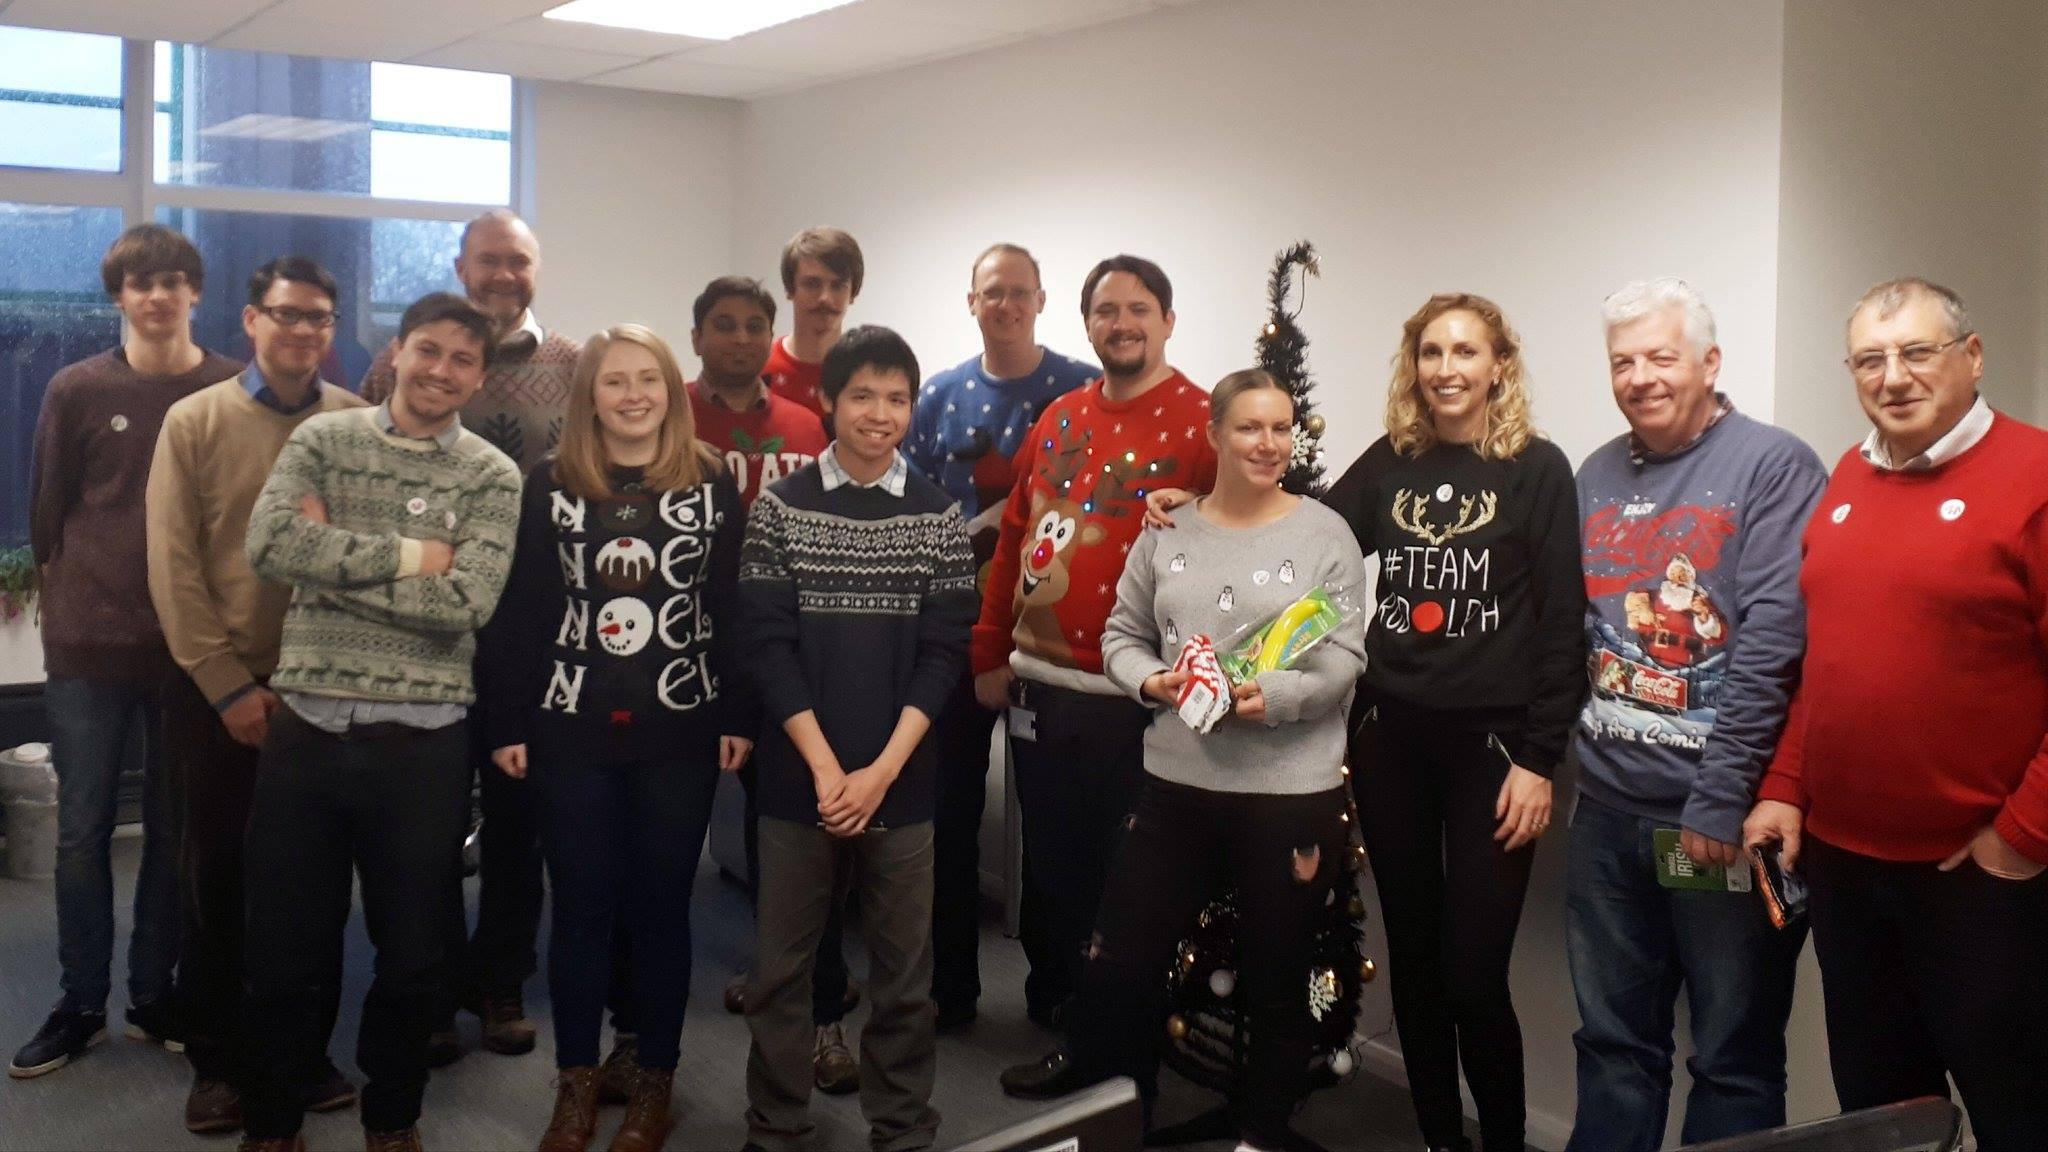 Christmas Jumper Day - Raising money for Save the Children